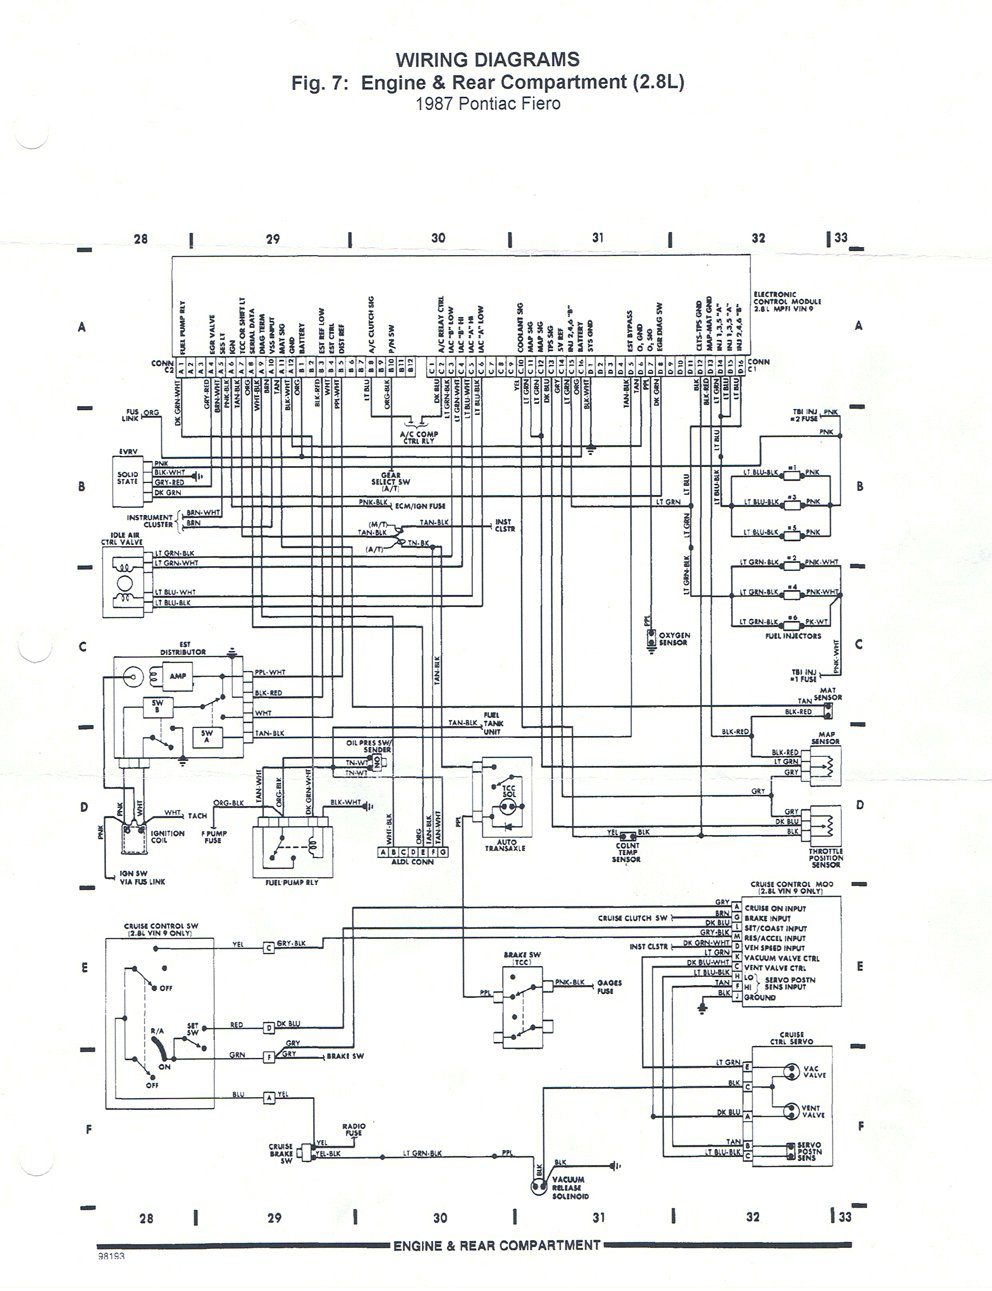 Penn Temperature Control Wiring Diagram 39 Wiring